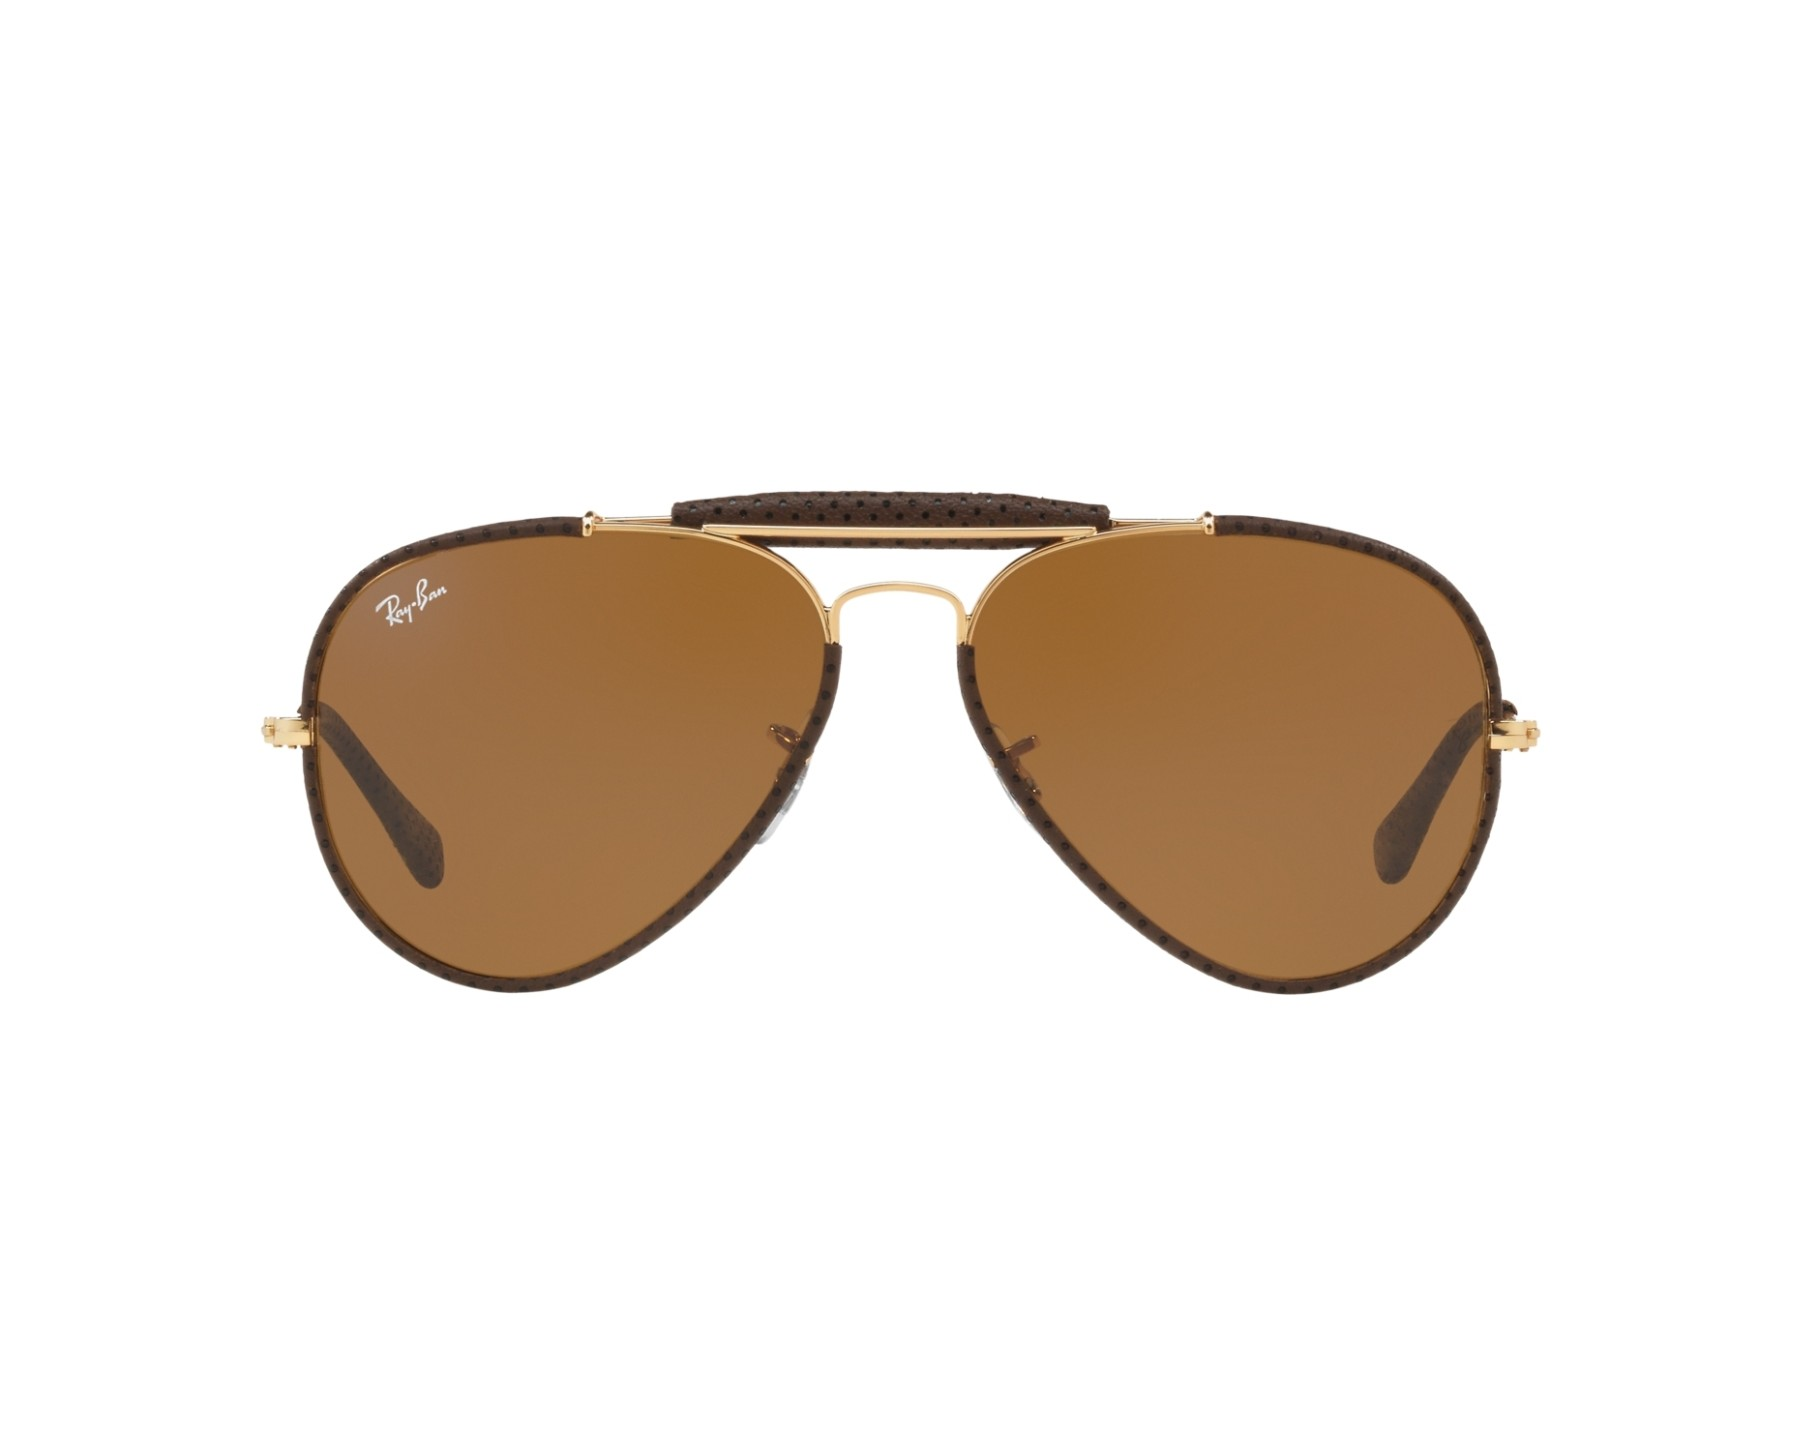 dd42c62cbd2 ... outdoorsman craft sunglasses 9a0d8 db776  italy sunglasses ray ban rb  3422 q 9041 58 14 brown gold 360 f906a ff42d